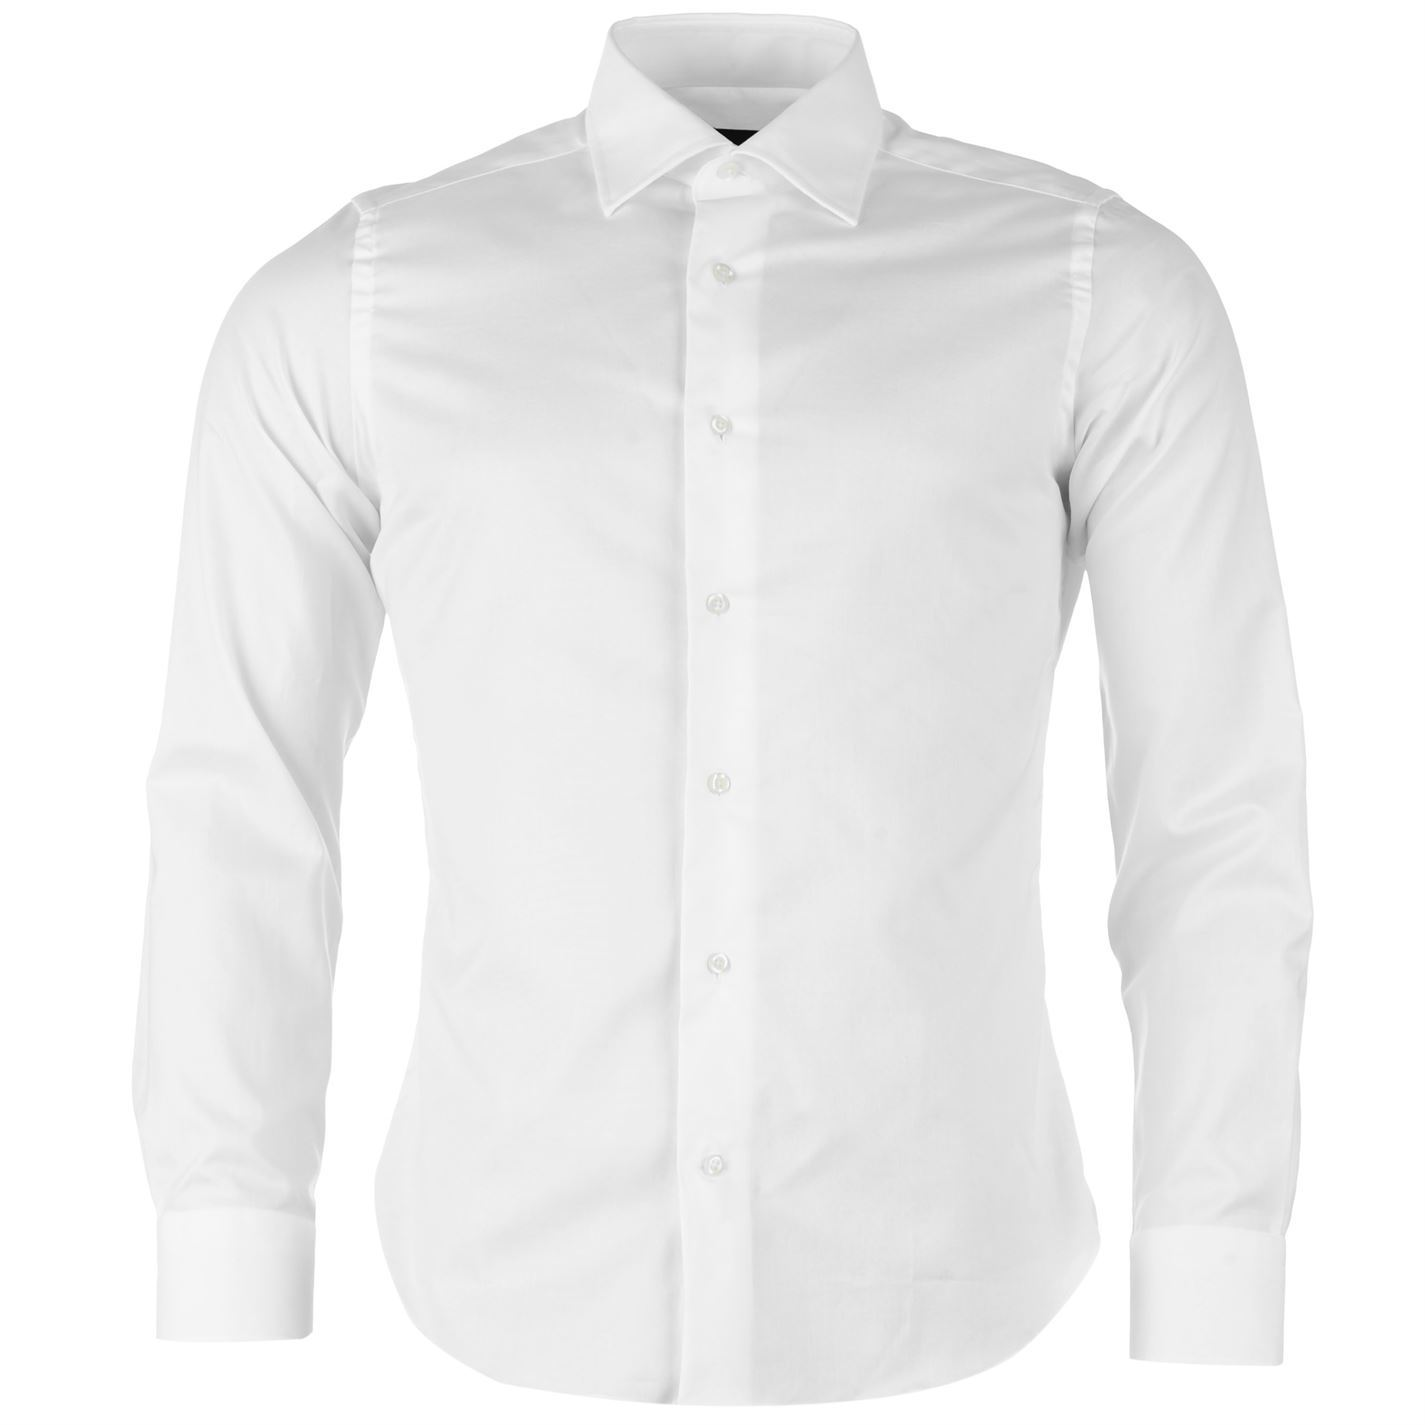 Lancetti mens padova formal shirt button down collar long for Best mens dress shirts under 50